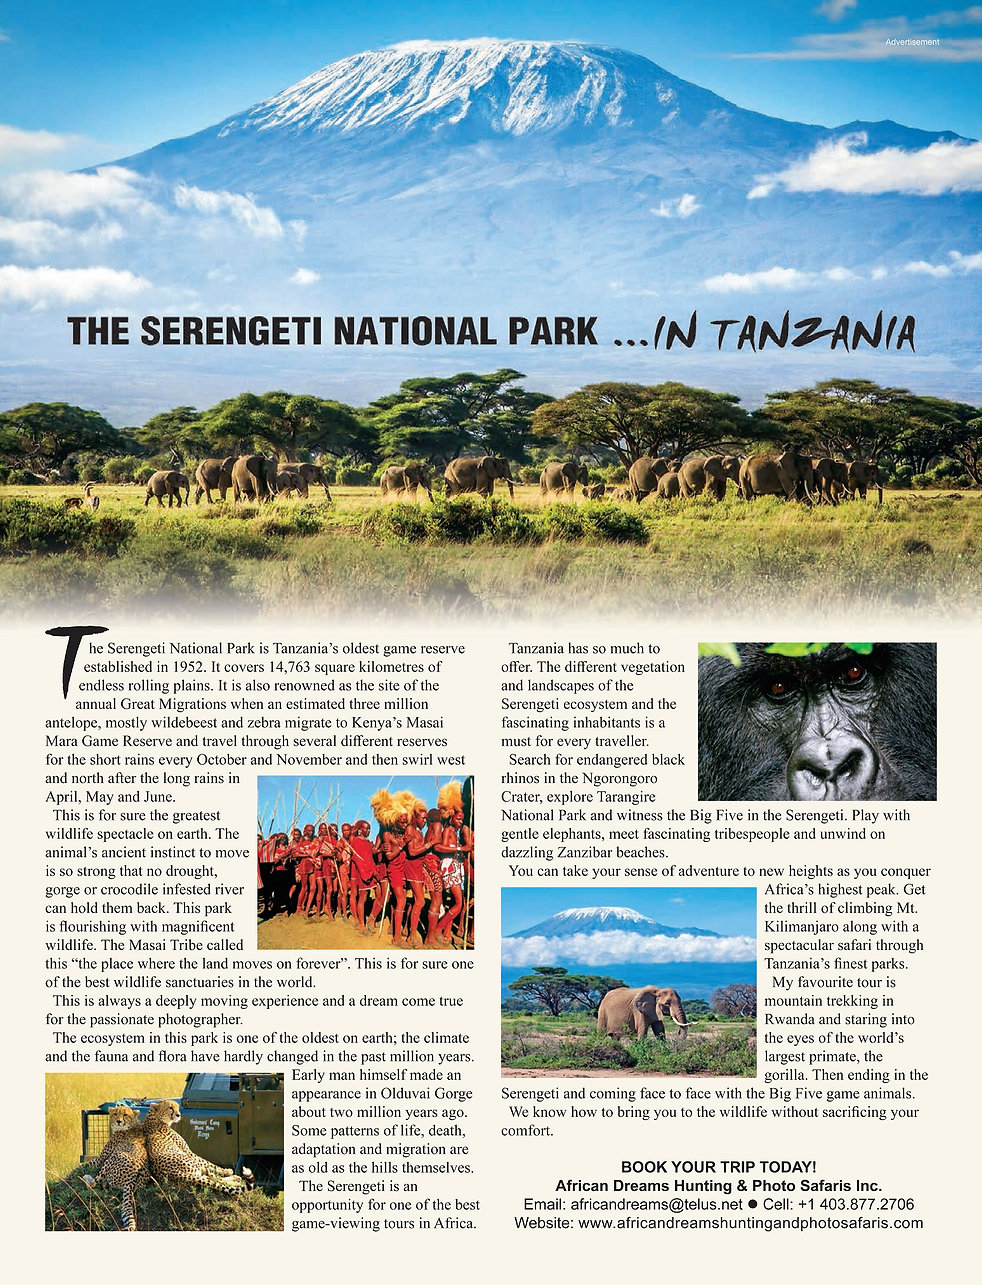 The Serengeti National Park In Tanzania